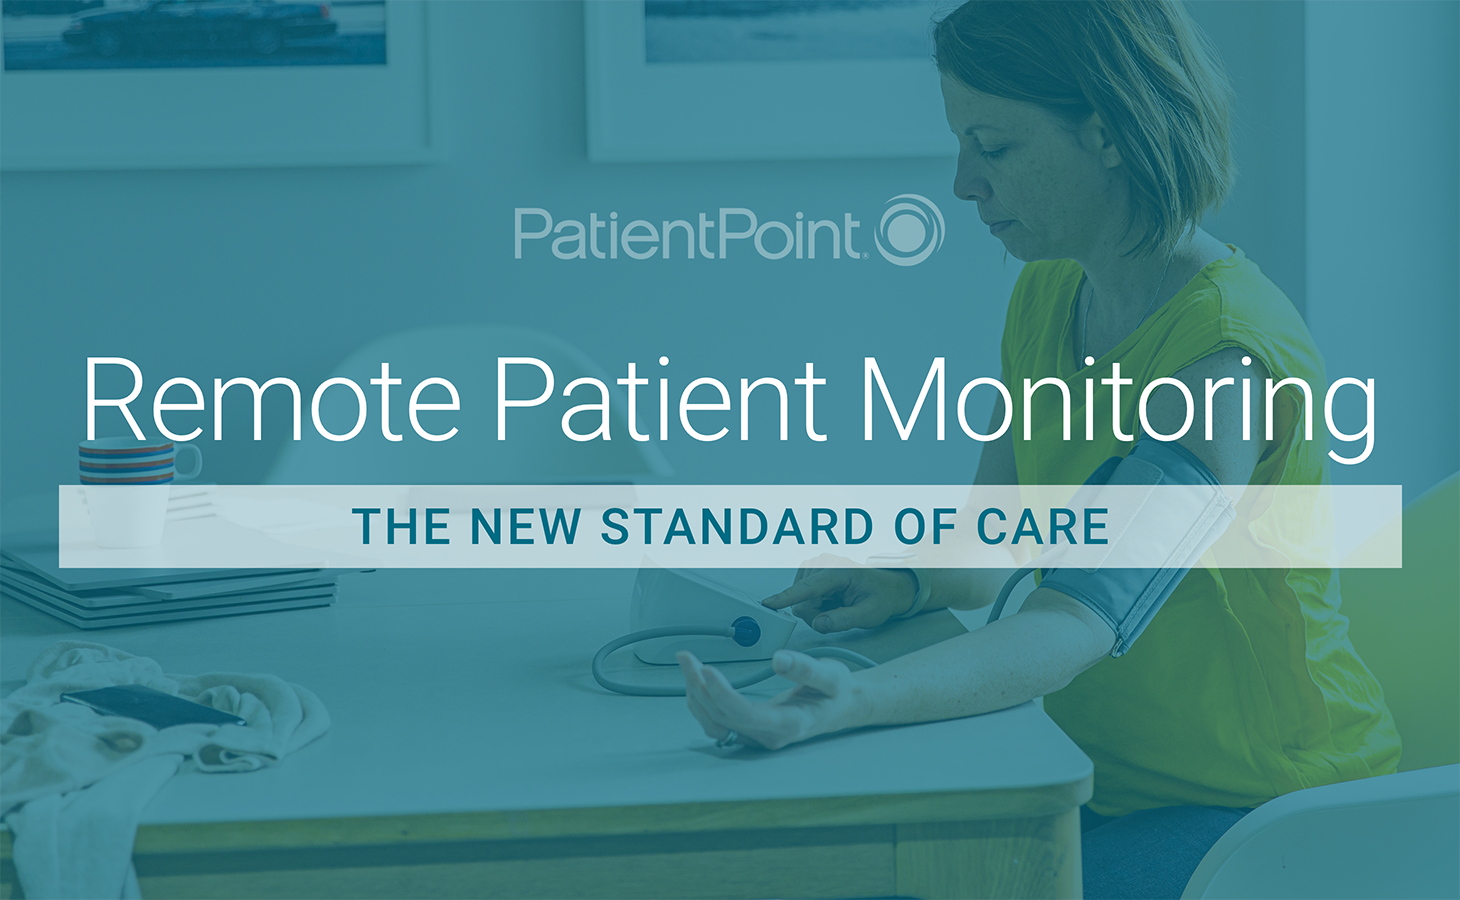 Remote patient monitoring: what healthcare providers need to know